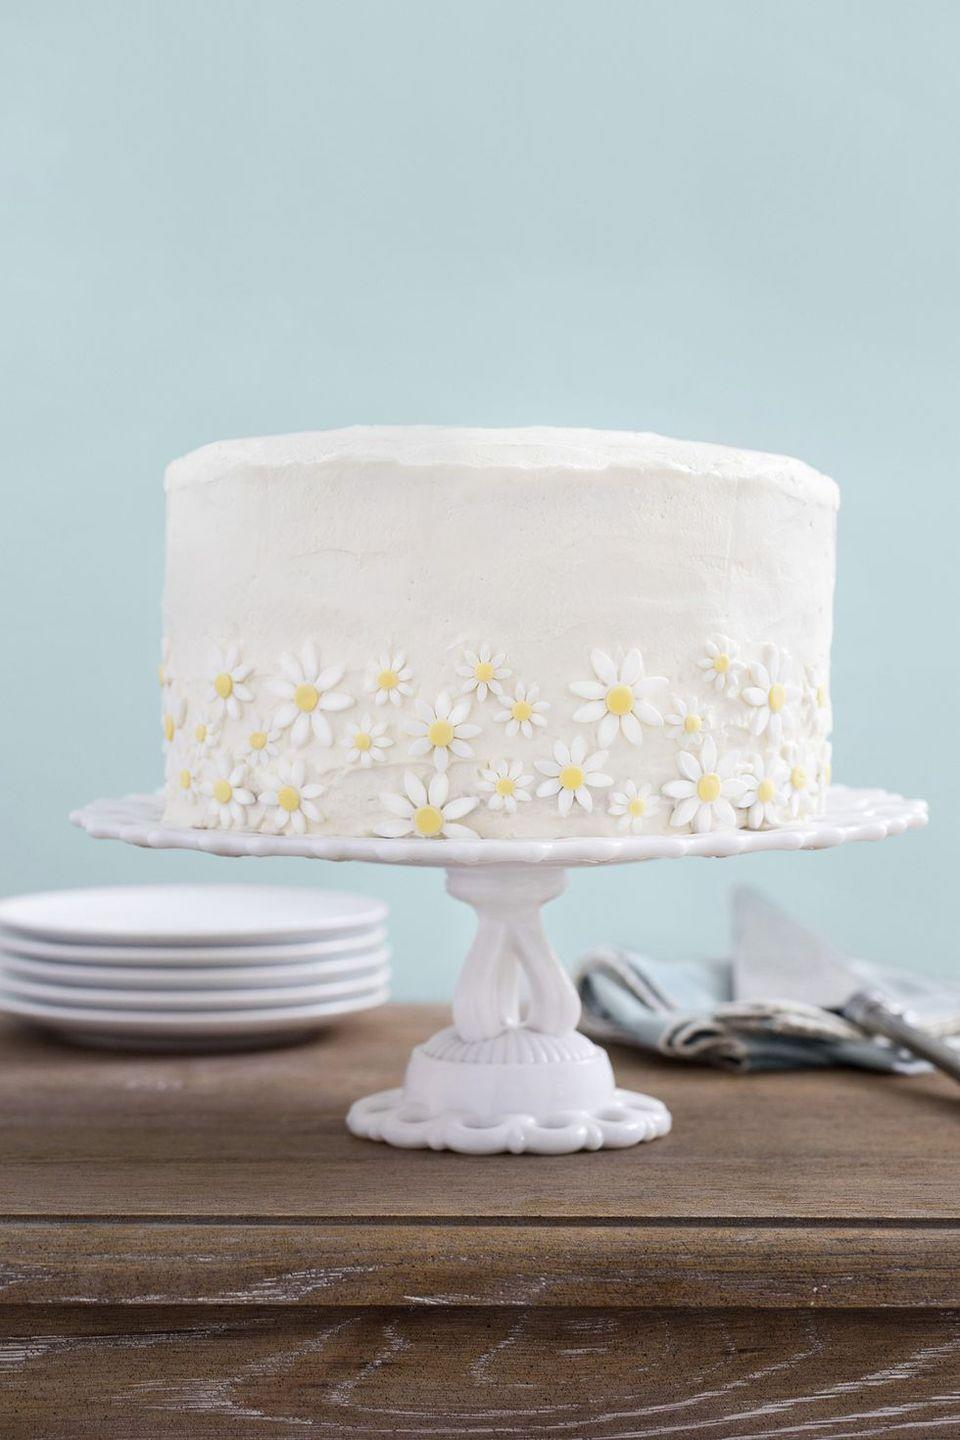 """<p>Vanilla cake layered with coconut lemon curd and topped with sweet-tangy frosting is the perfect summer treat!</p><p><em><a href=""""https://www.countryliving.com/food-drinks/recipes/a35037/lemon-coconut-cake-with-mascarpone-frosting/"""" rel=""""nofollow noopener"""" target=""""_blank"""" data-ylk=""""slk:Get the recipe from Country Living »"""" class=""""link rapid-noclick-resp"""">Get the recipe from Country Living »</a></em></p>"""